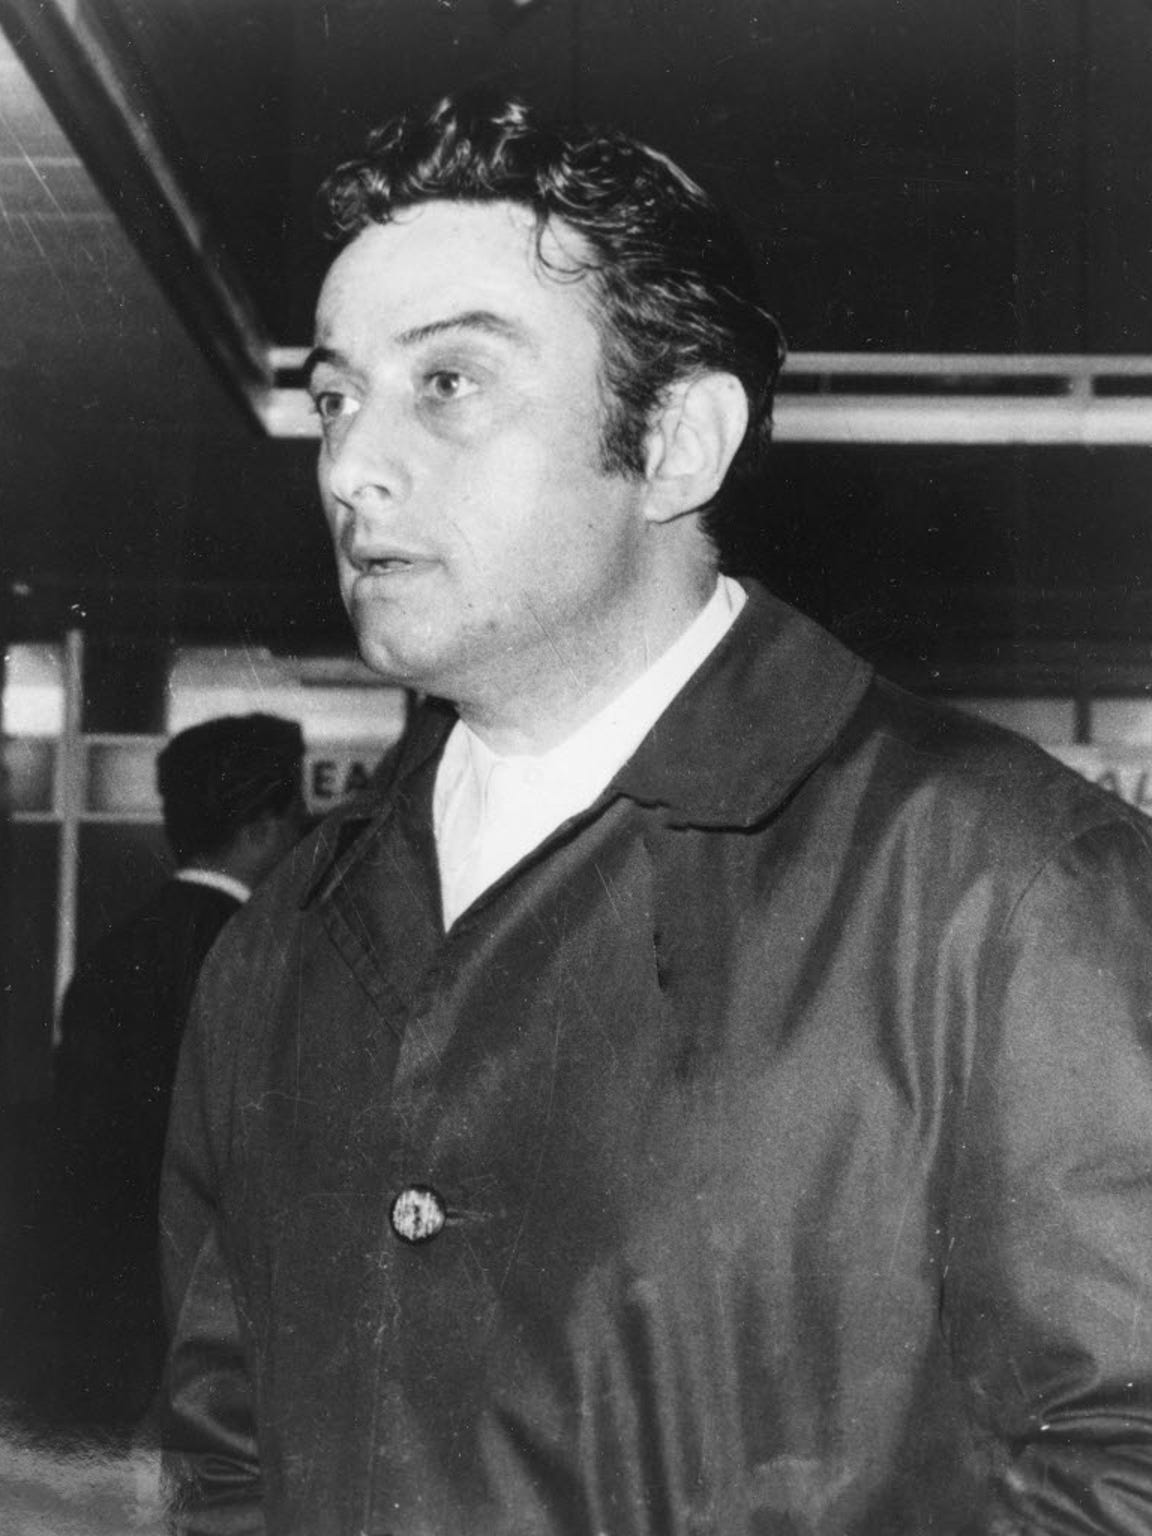 Comedian Lenny Bruce at New York's Idlewild Airport